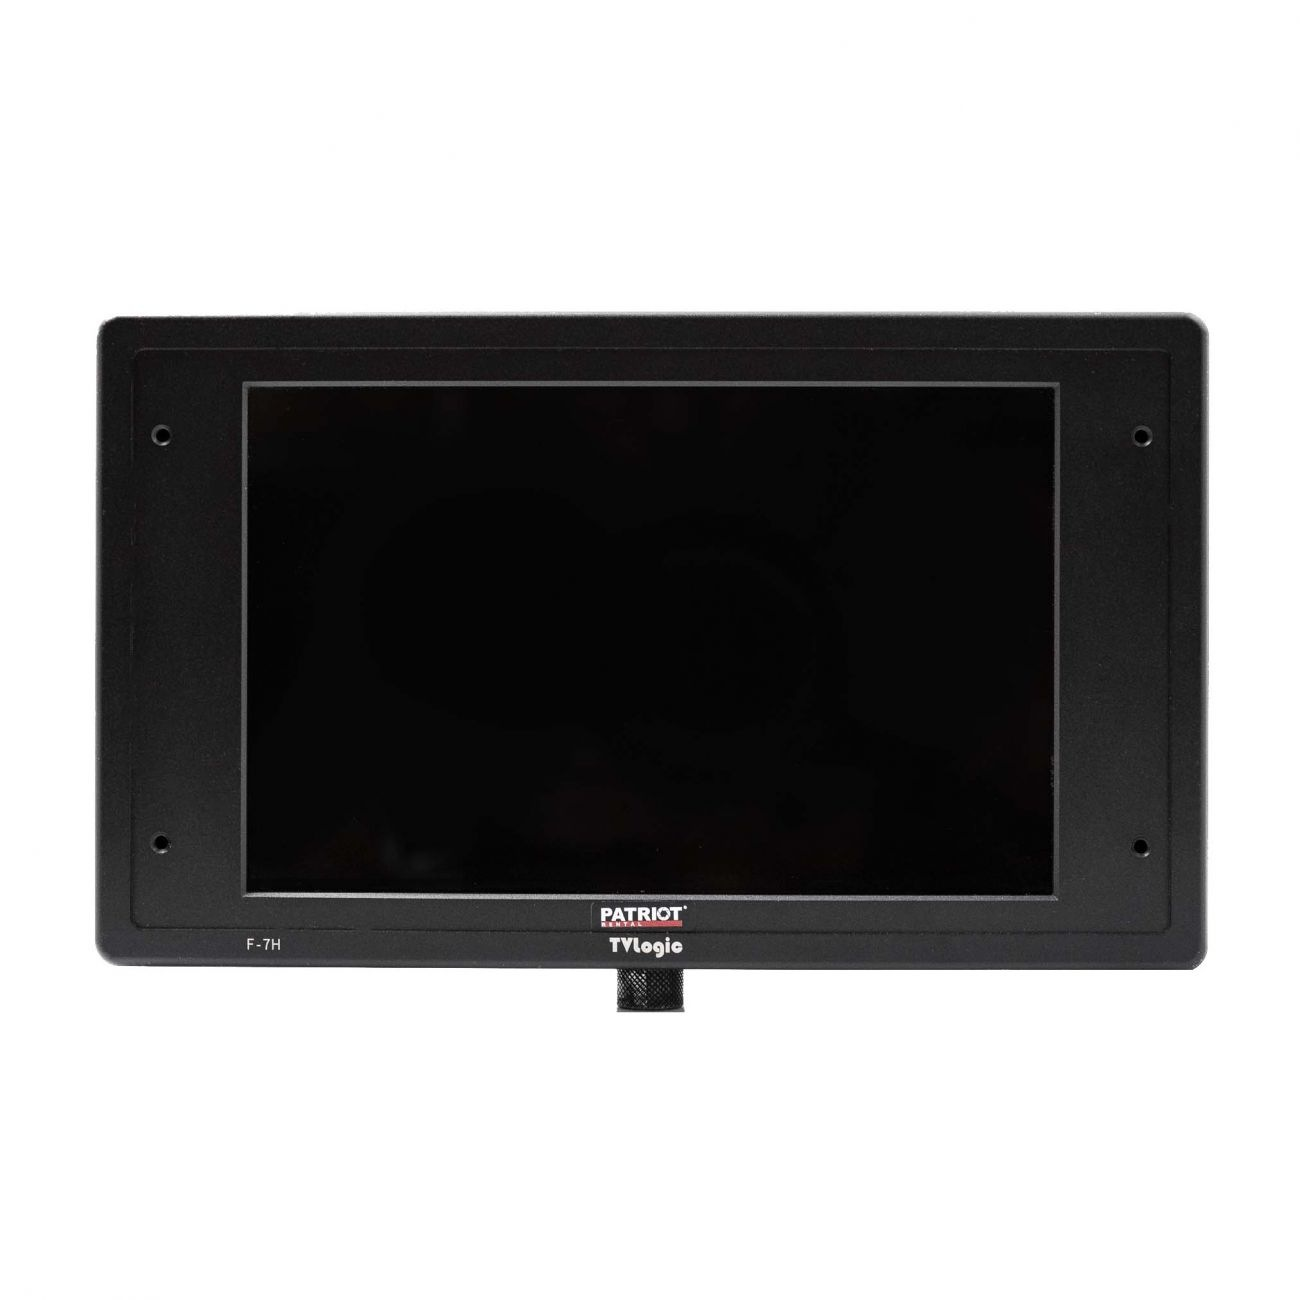 Monitor OnCamera 7″ TV Logic F-7H FHD HDR + battery